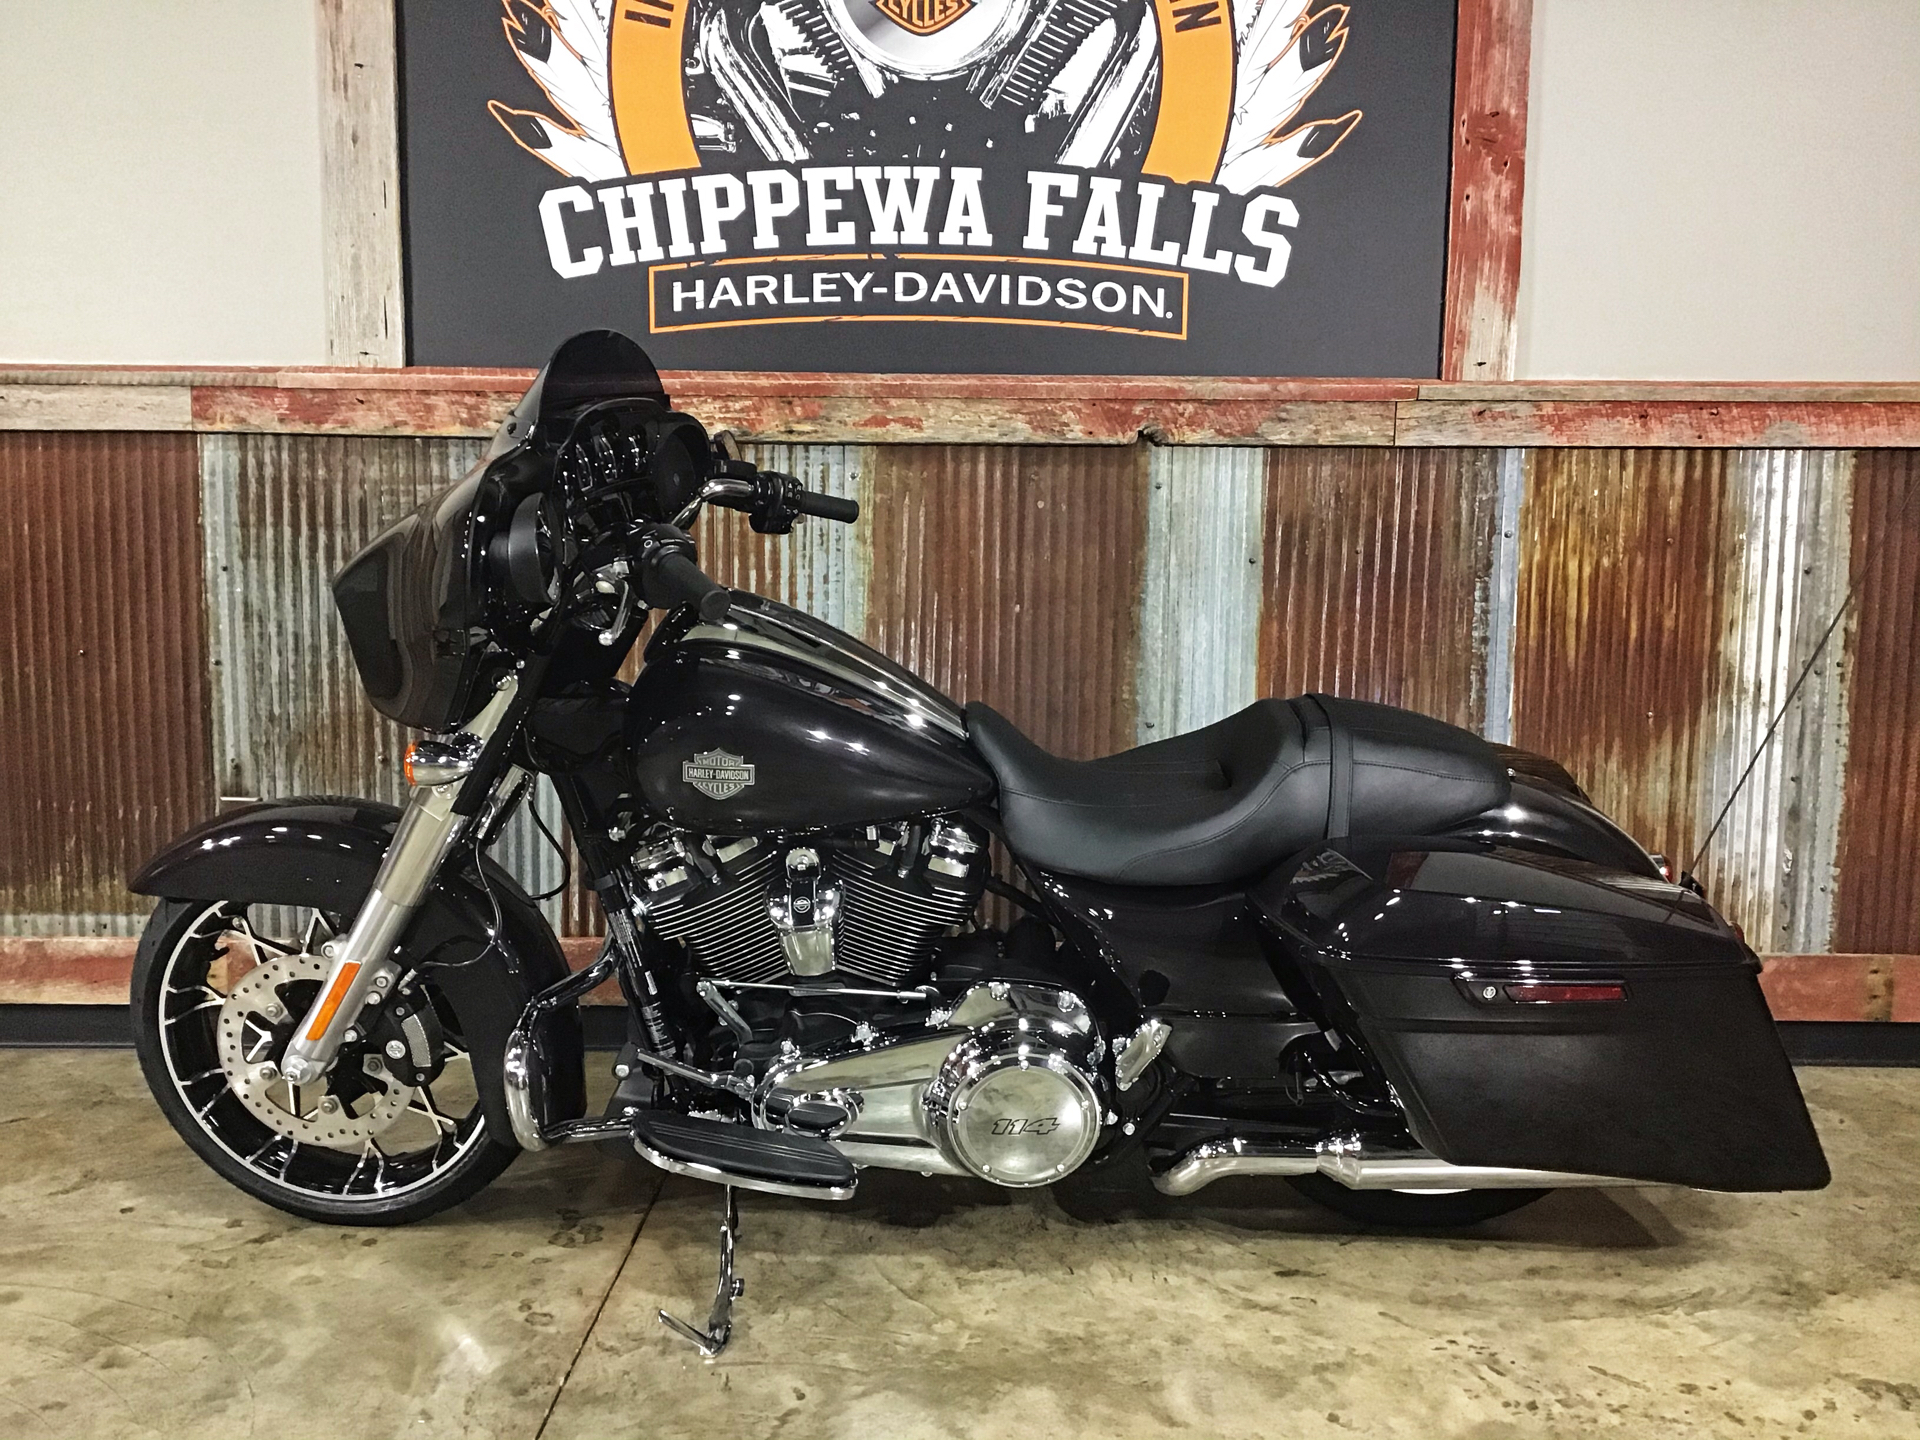 2021 Harley-Davidson Street Glide® Special in Chippewa Falls, Wisconsin - Photo 9